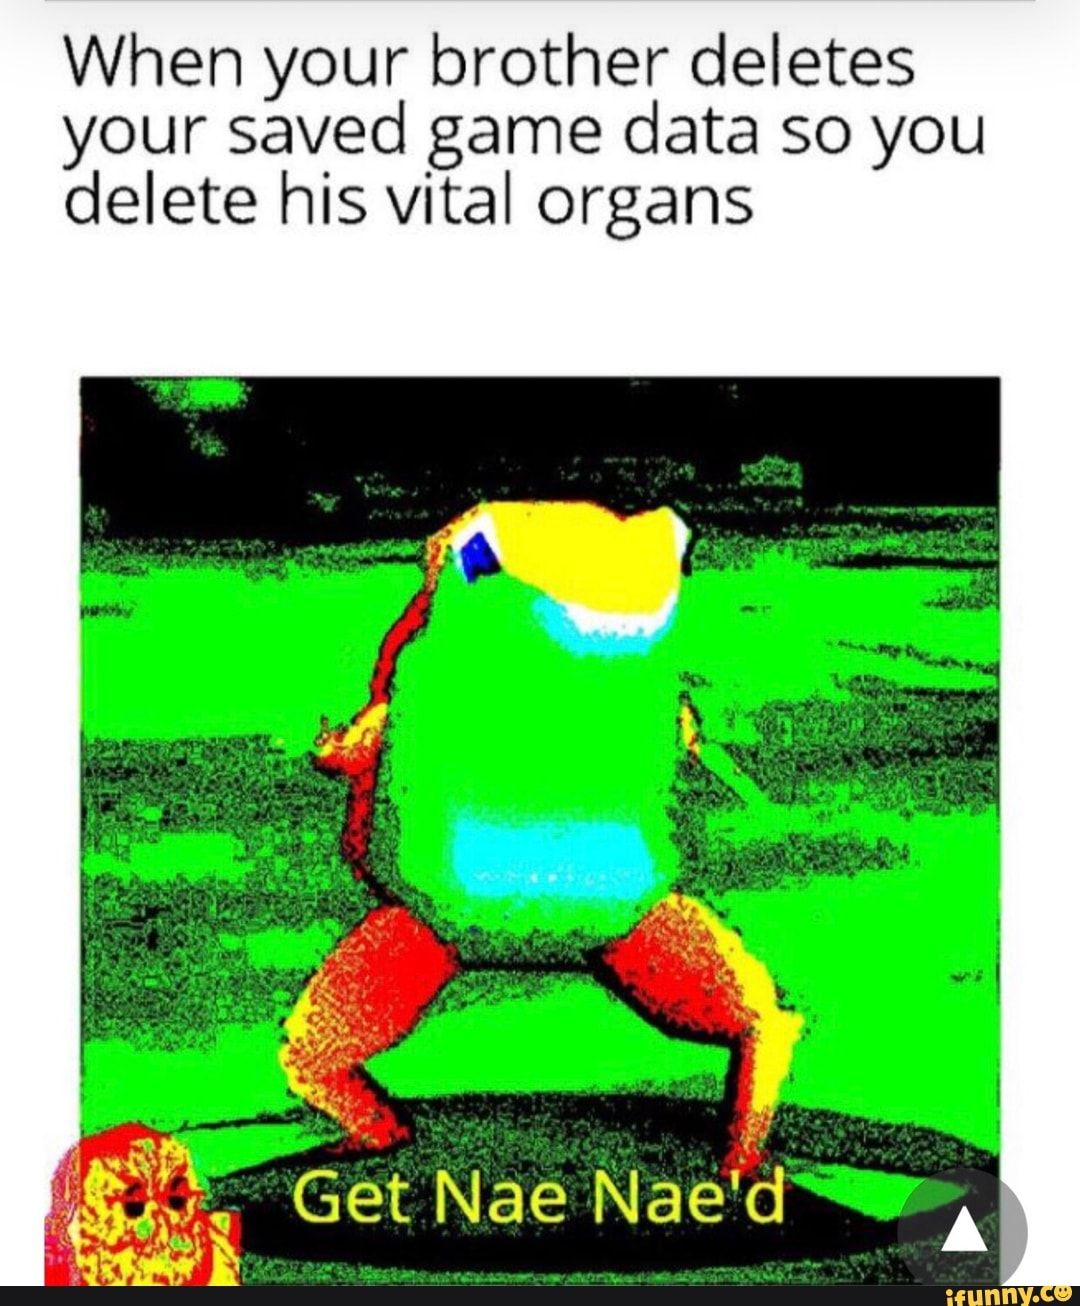 Picture memes 77vwqKEx6: 10 comments — iFunny When your brother deletes your saved game data so you delete his vital organs – popular memes on the site